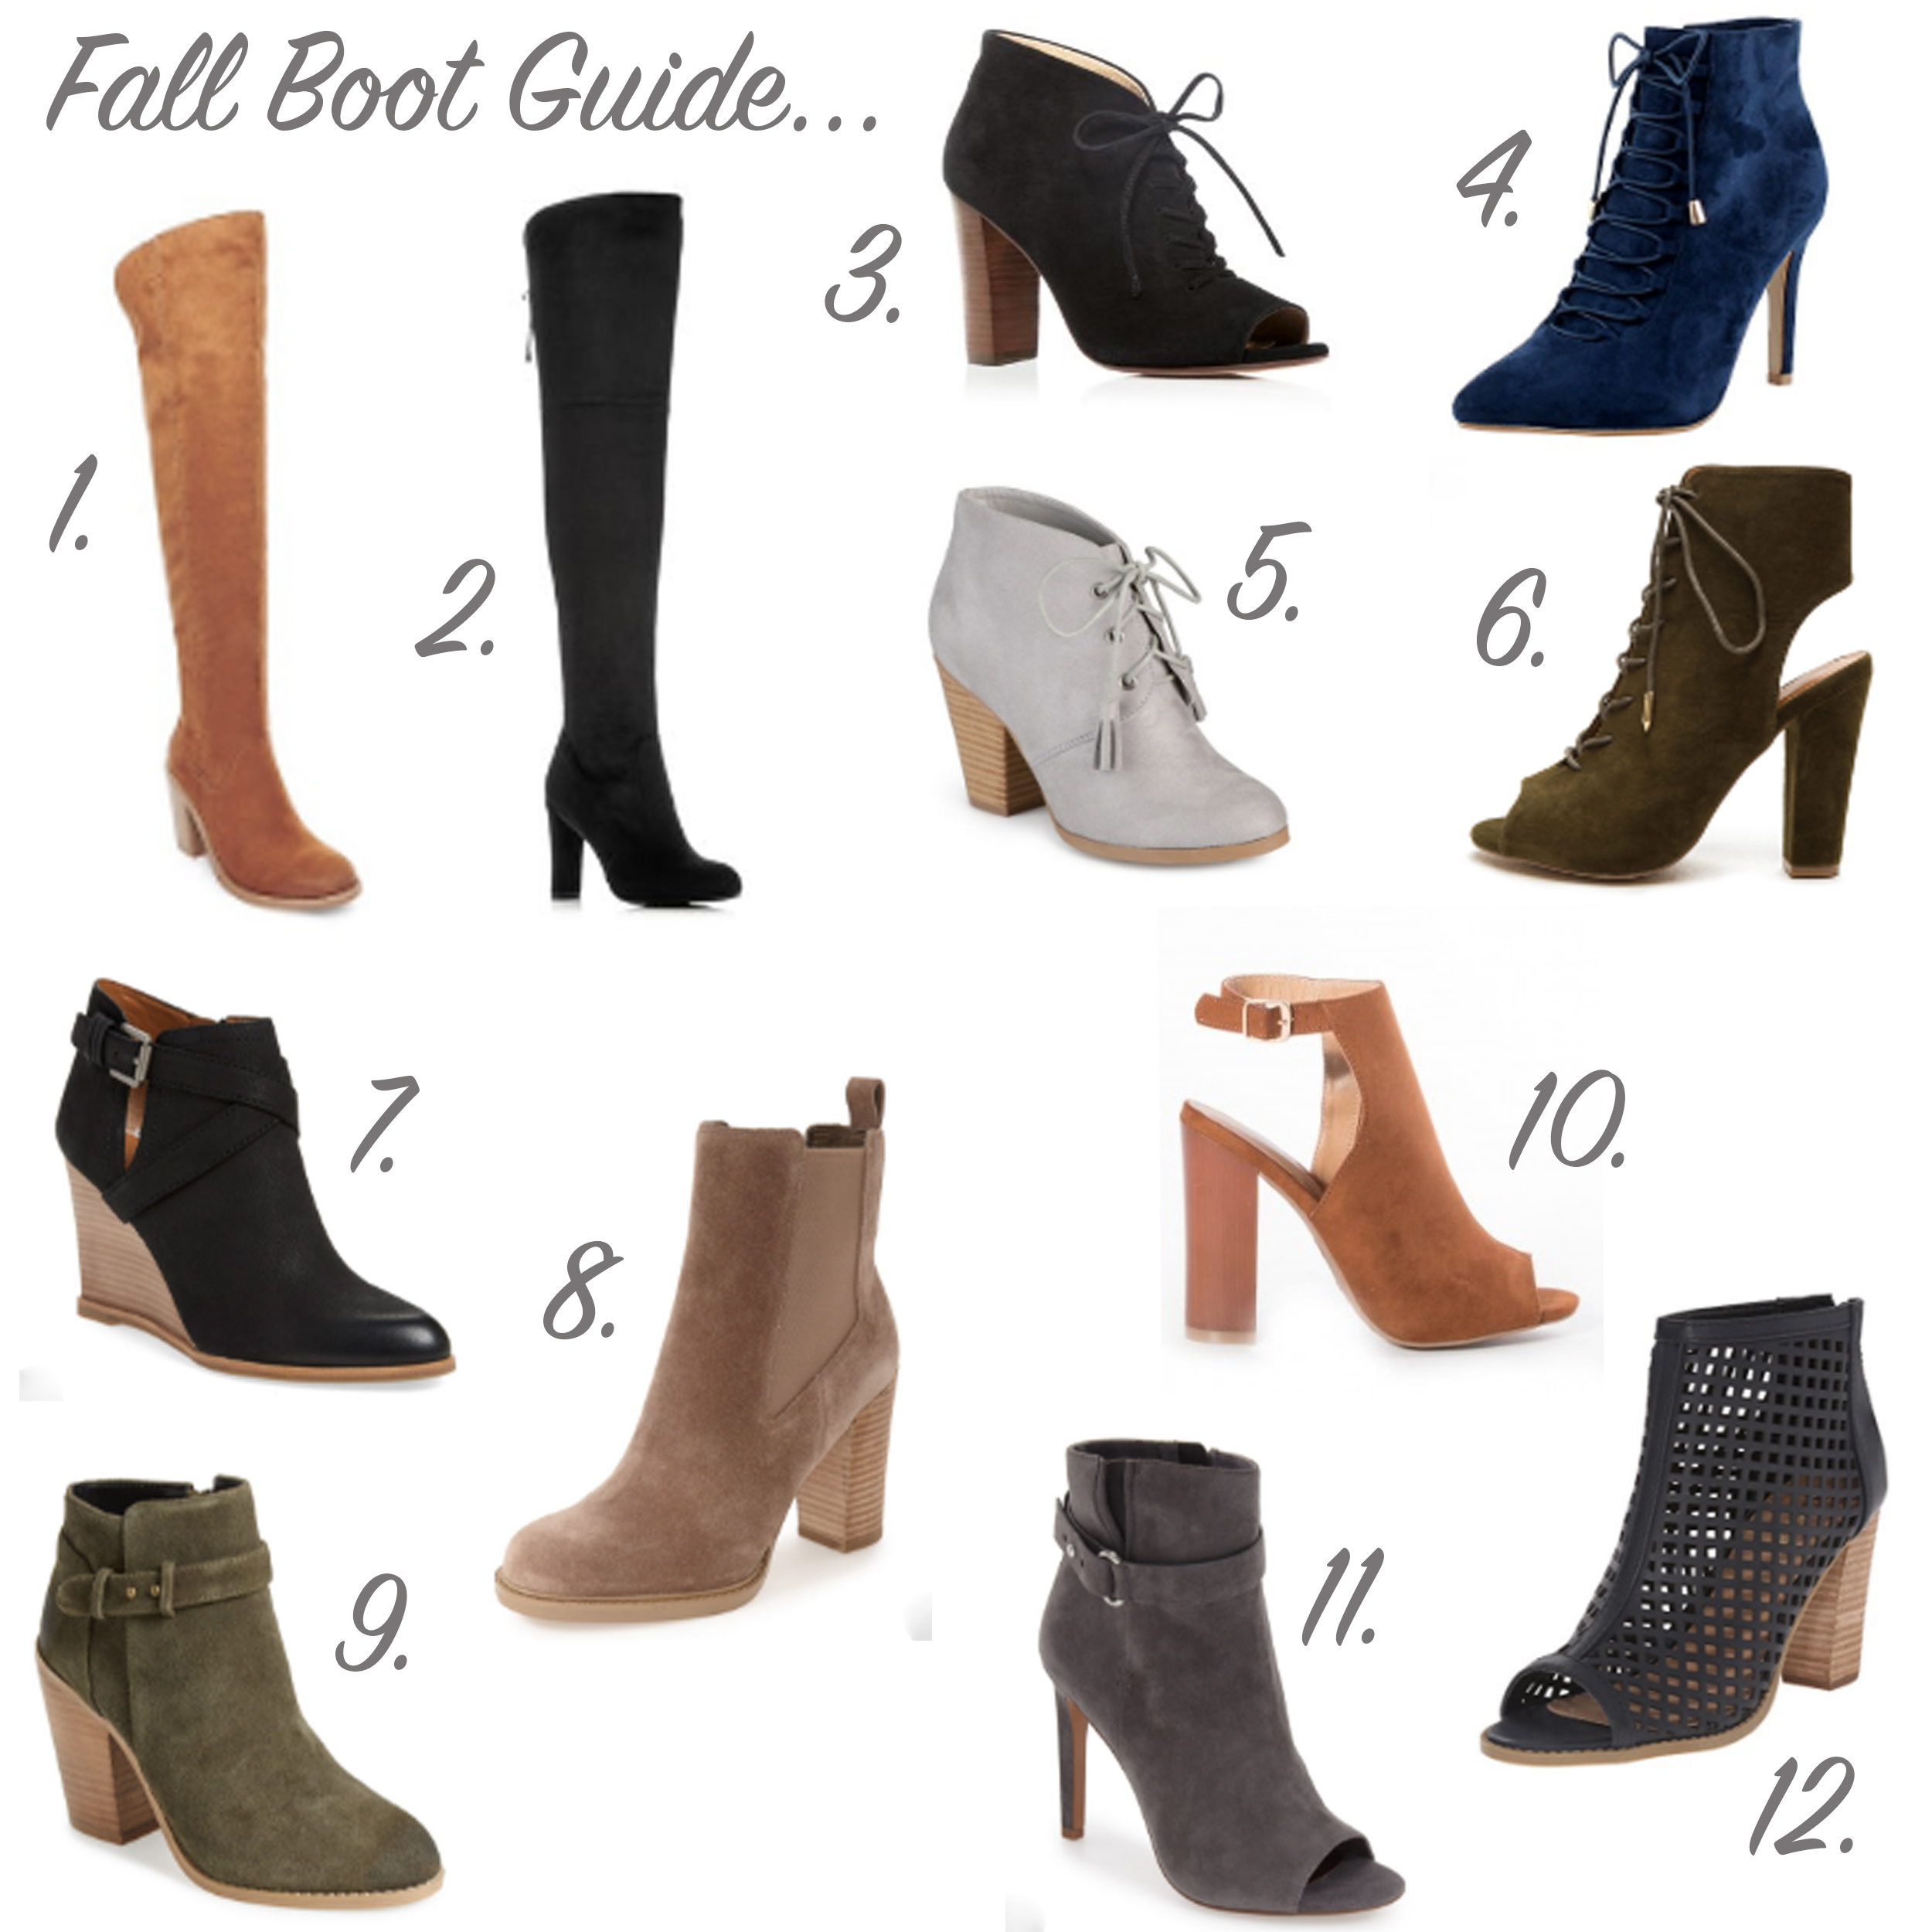 Fall 2016 Boot Guide - OTK Boots + Ankle Boots | Missy On Madison